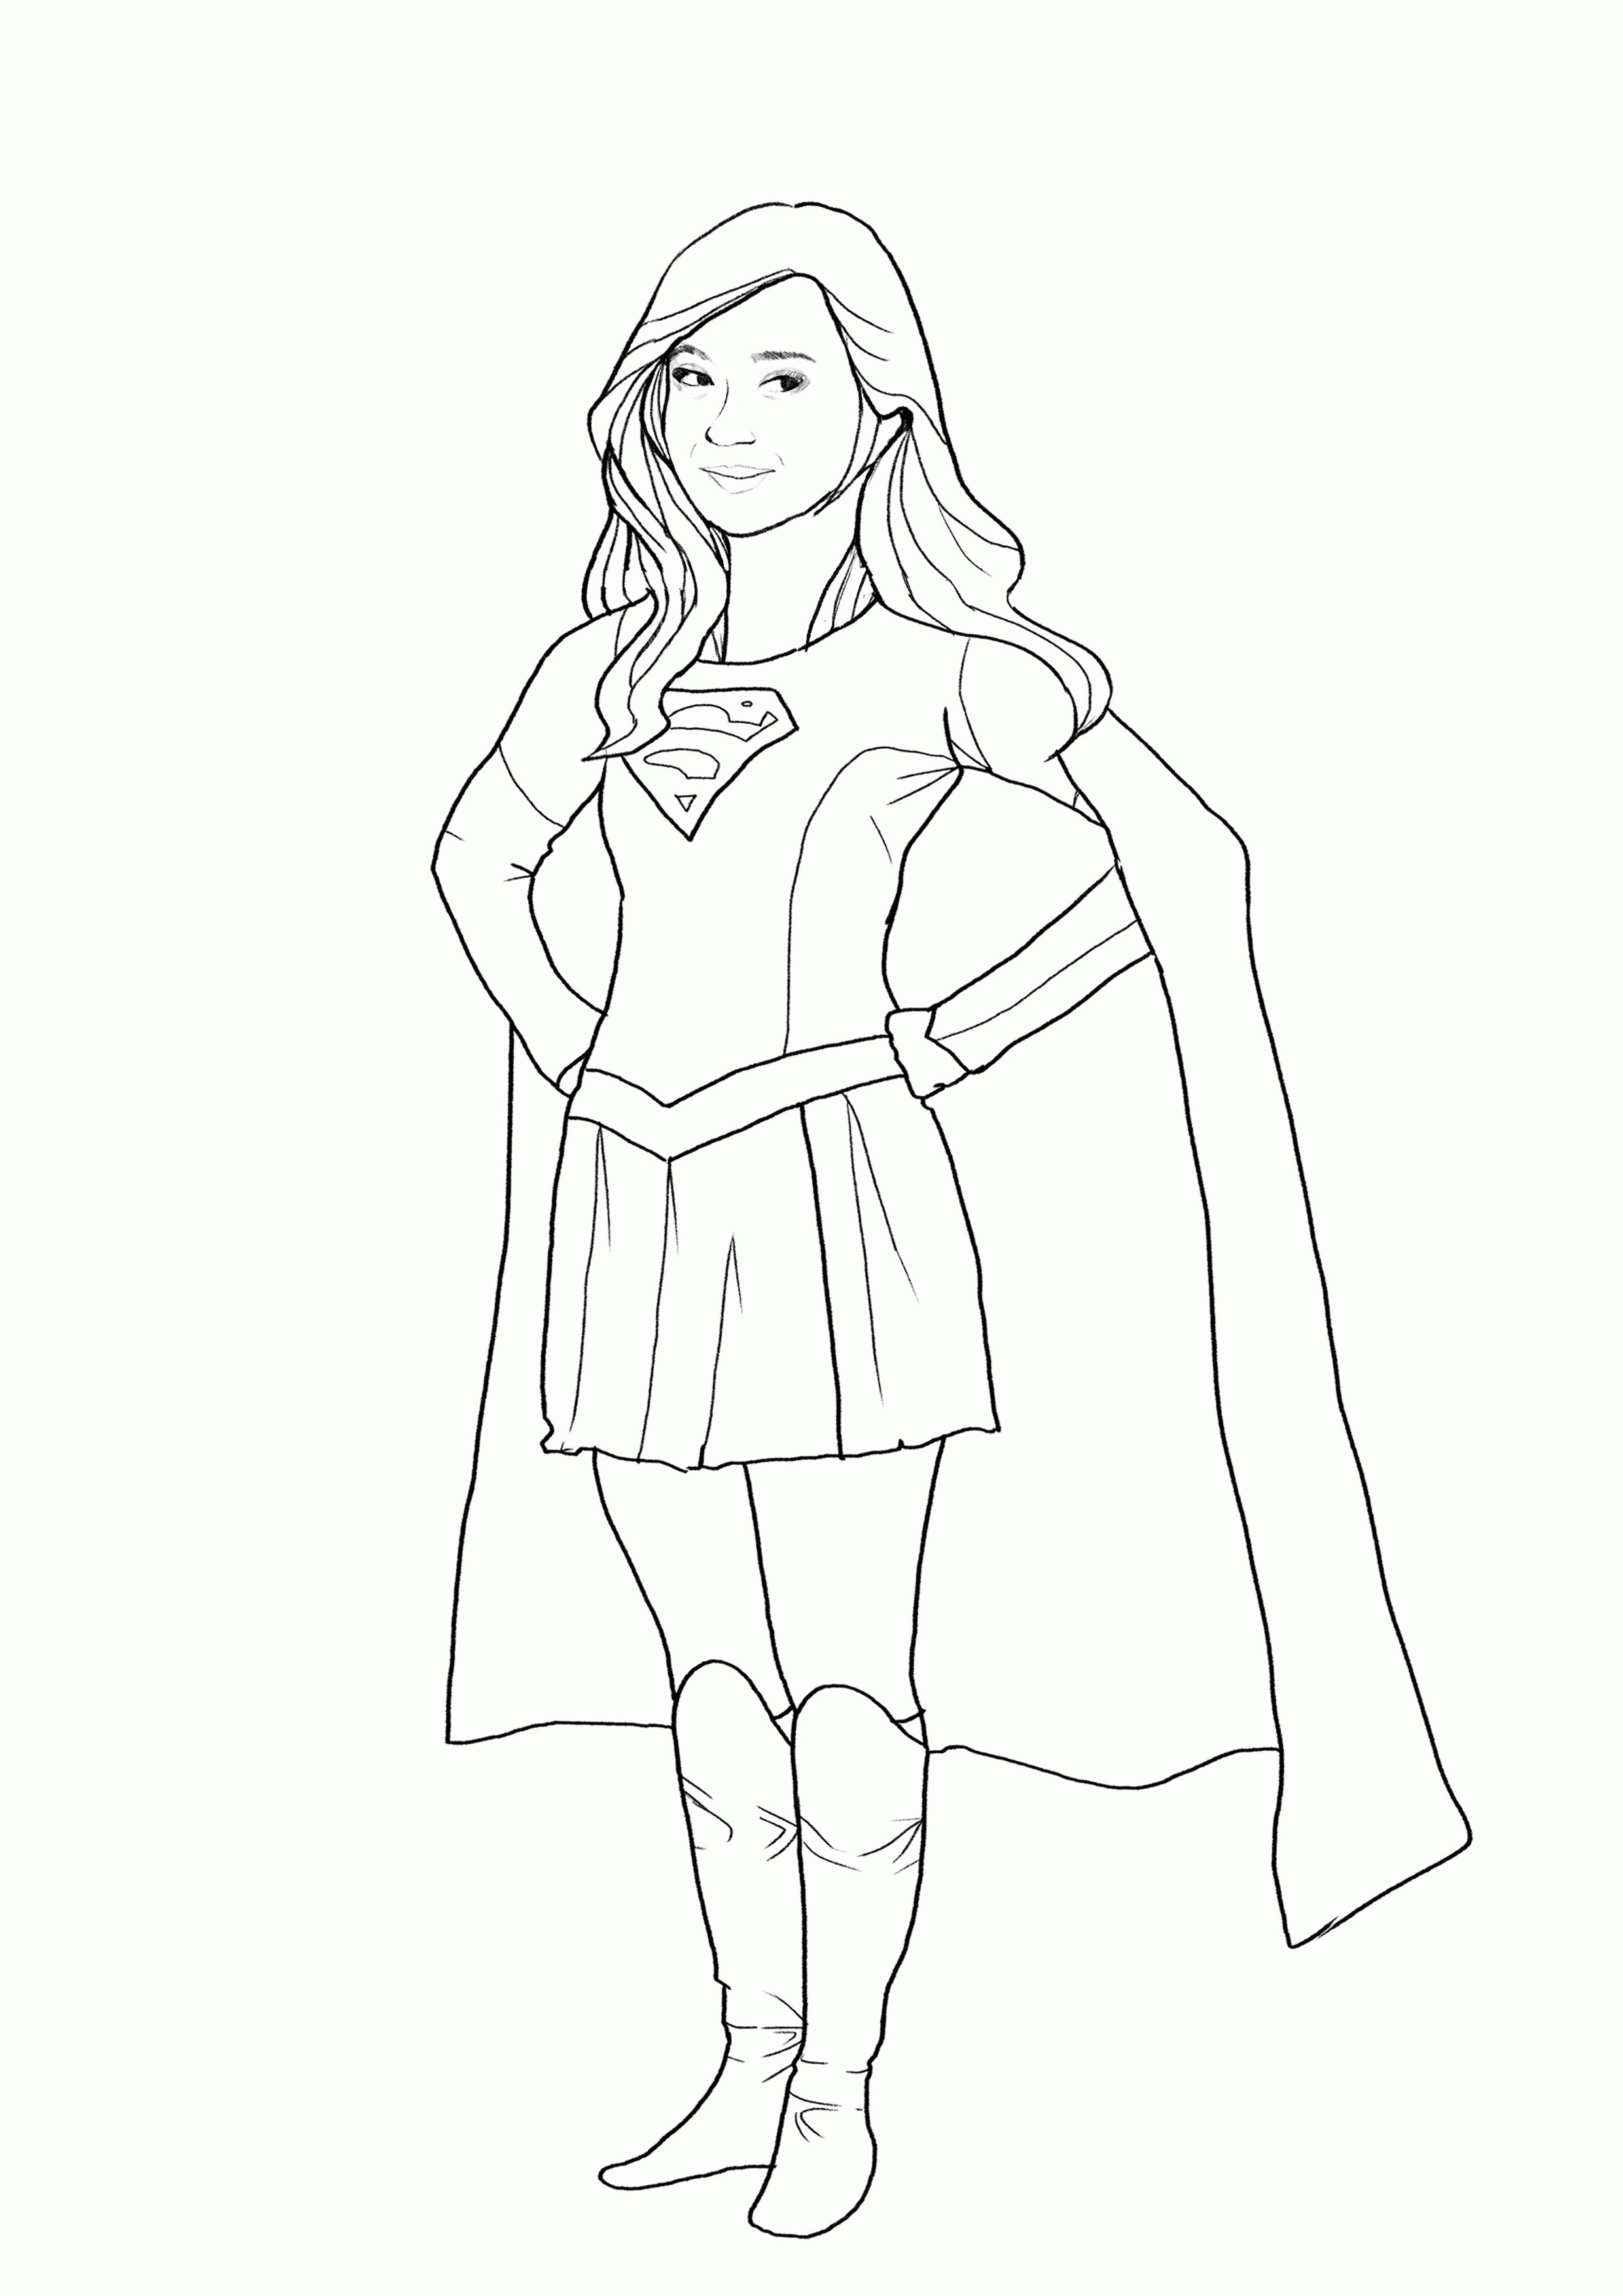 2480x3508 Shocking Supergirl Coloring Pages Image For Inspiration